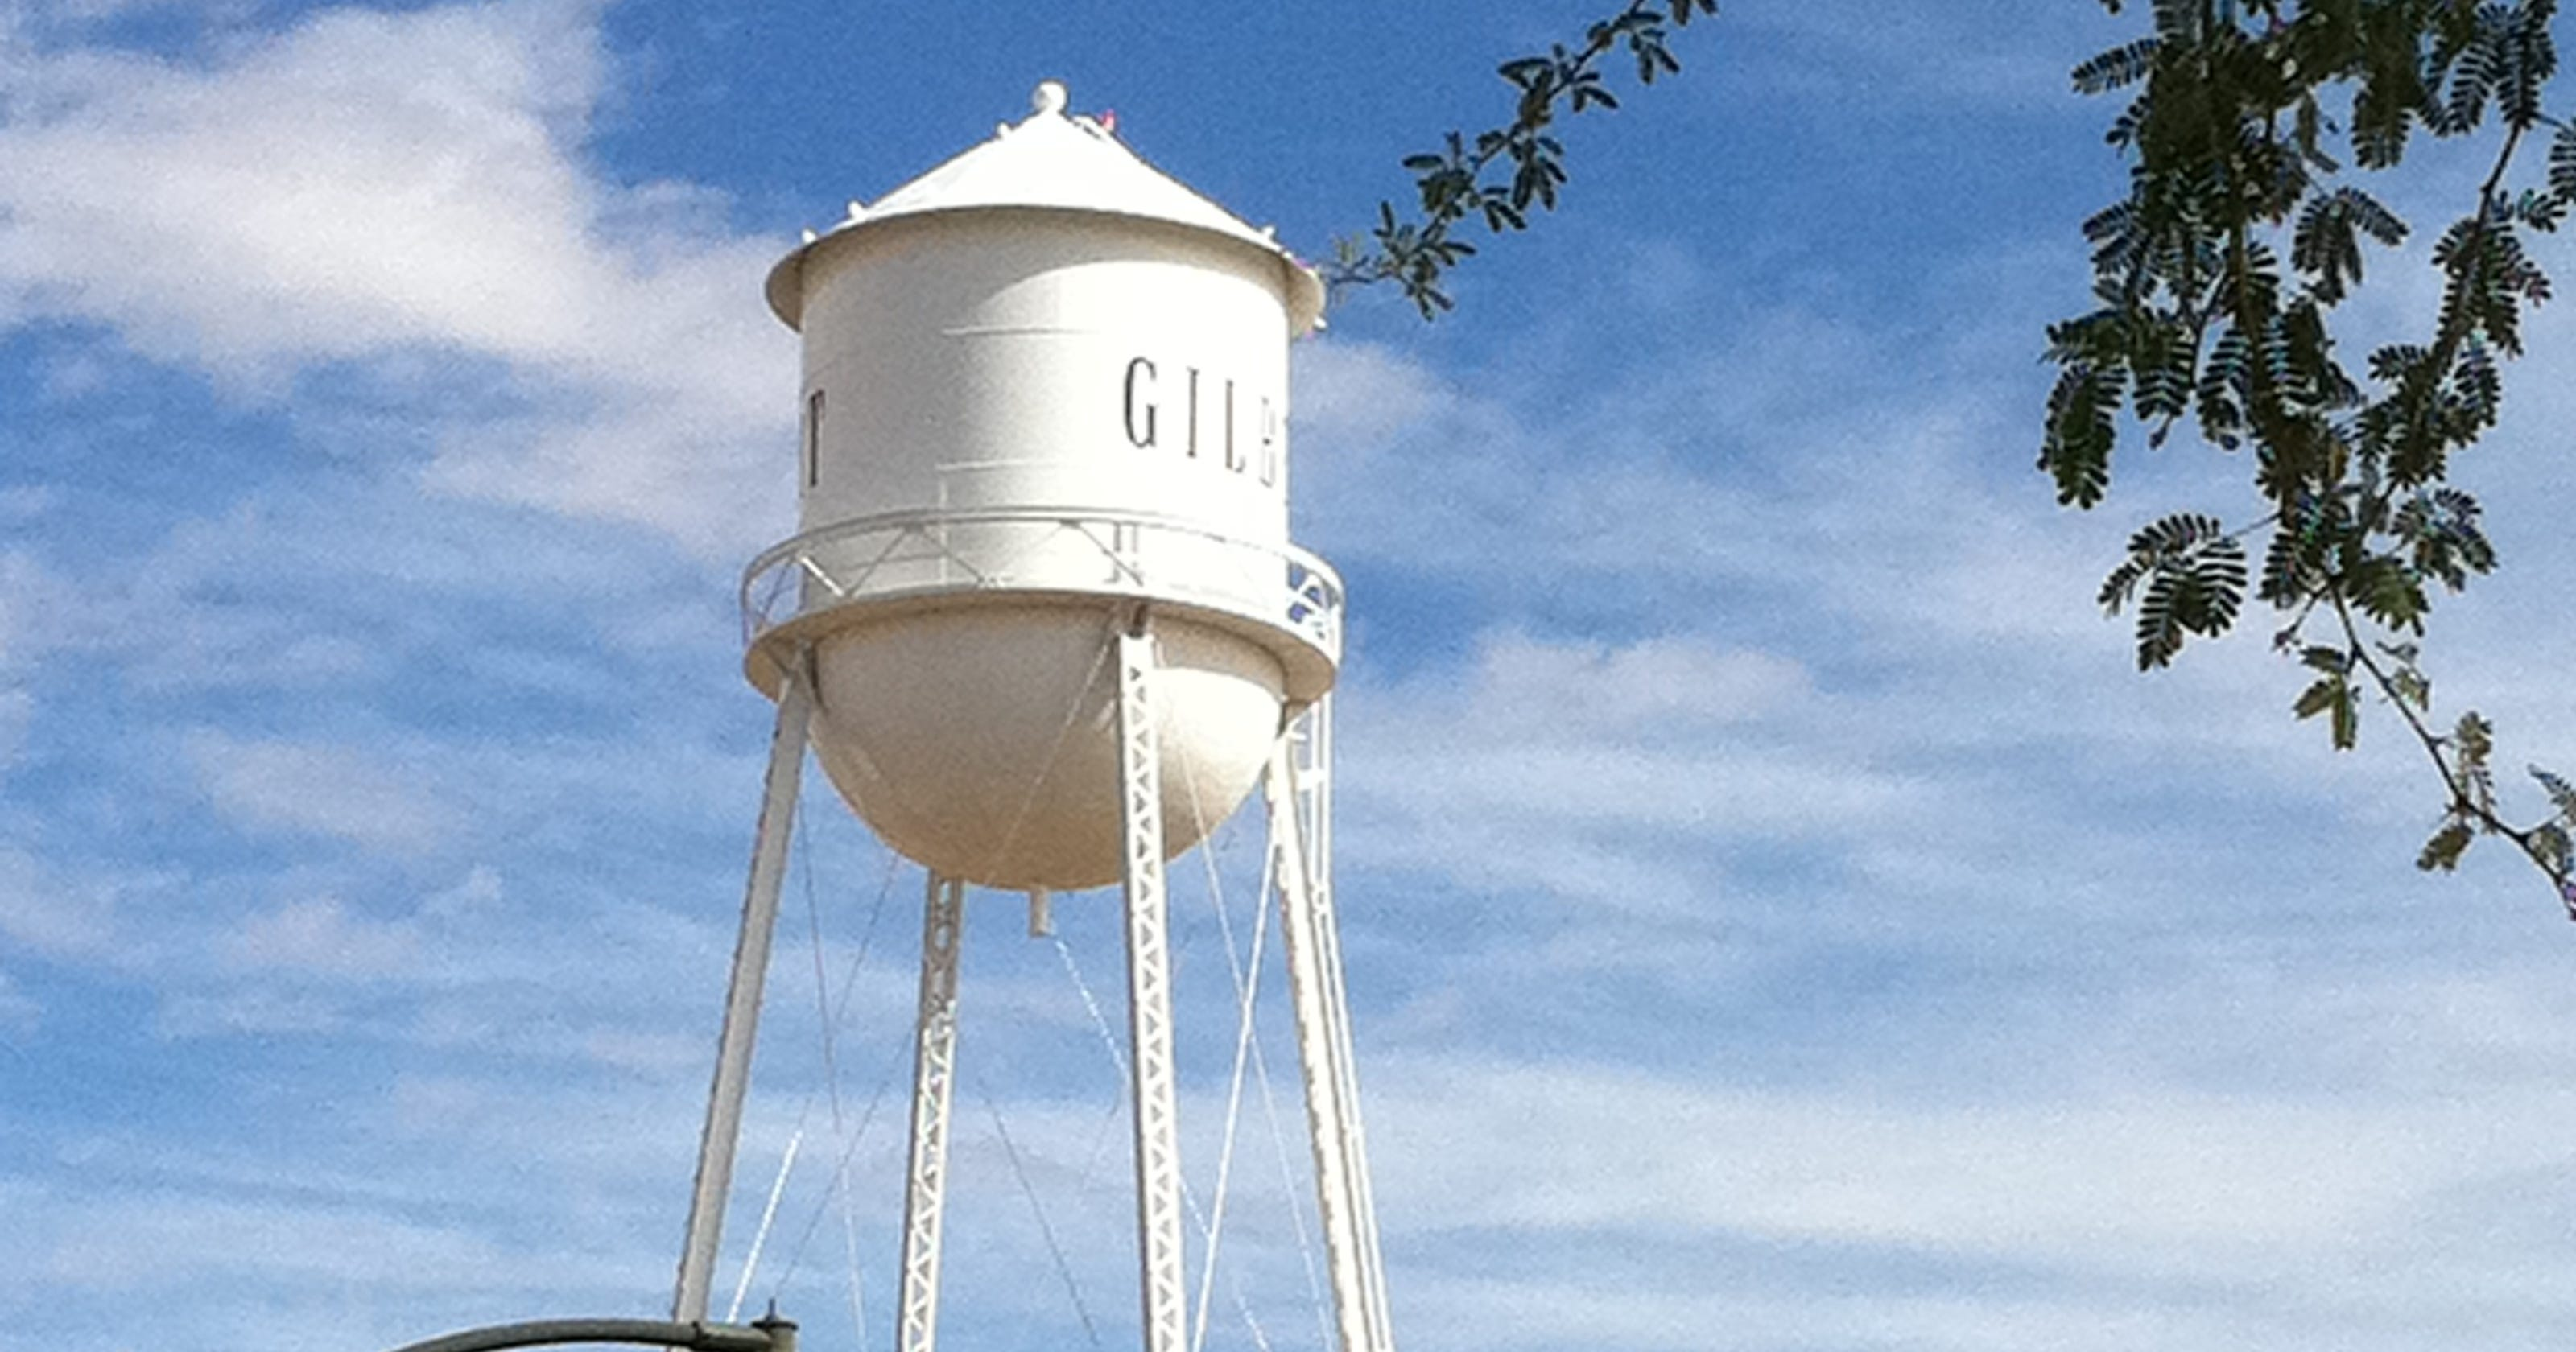 Gilbert history: Water tower enduring symbol of town